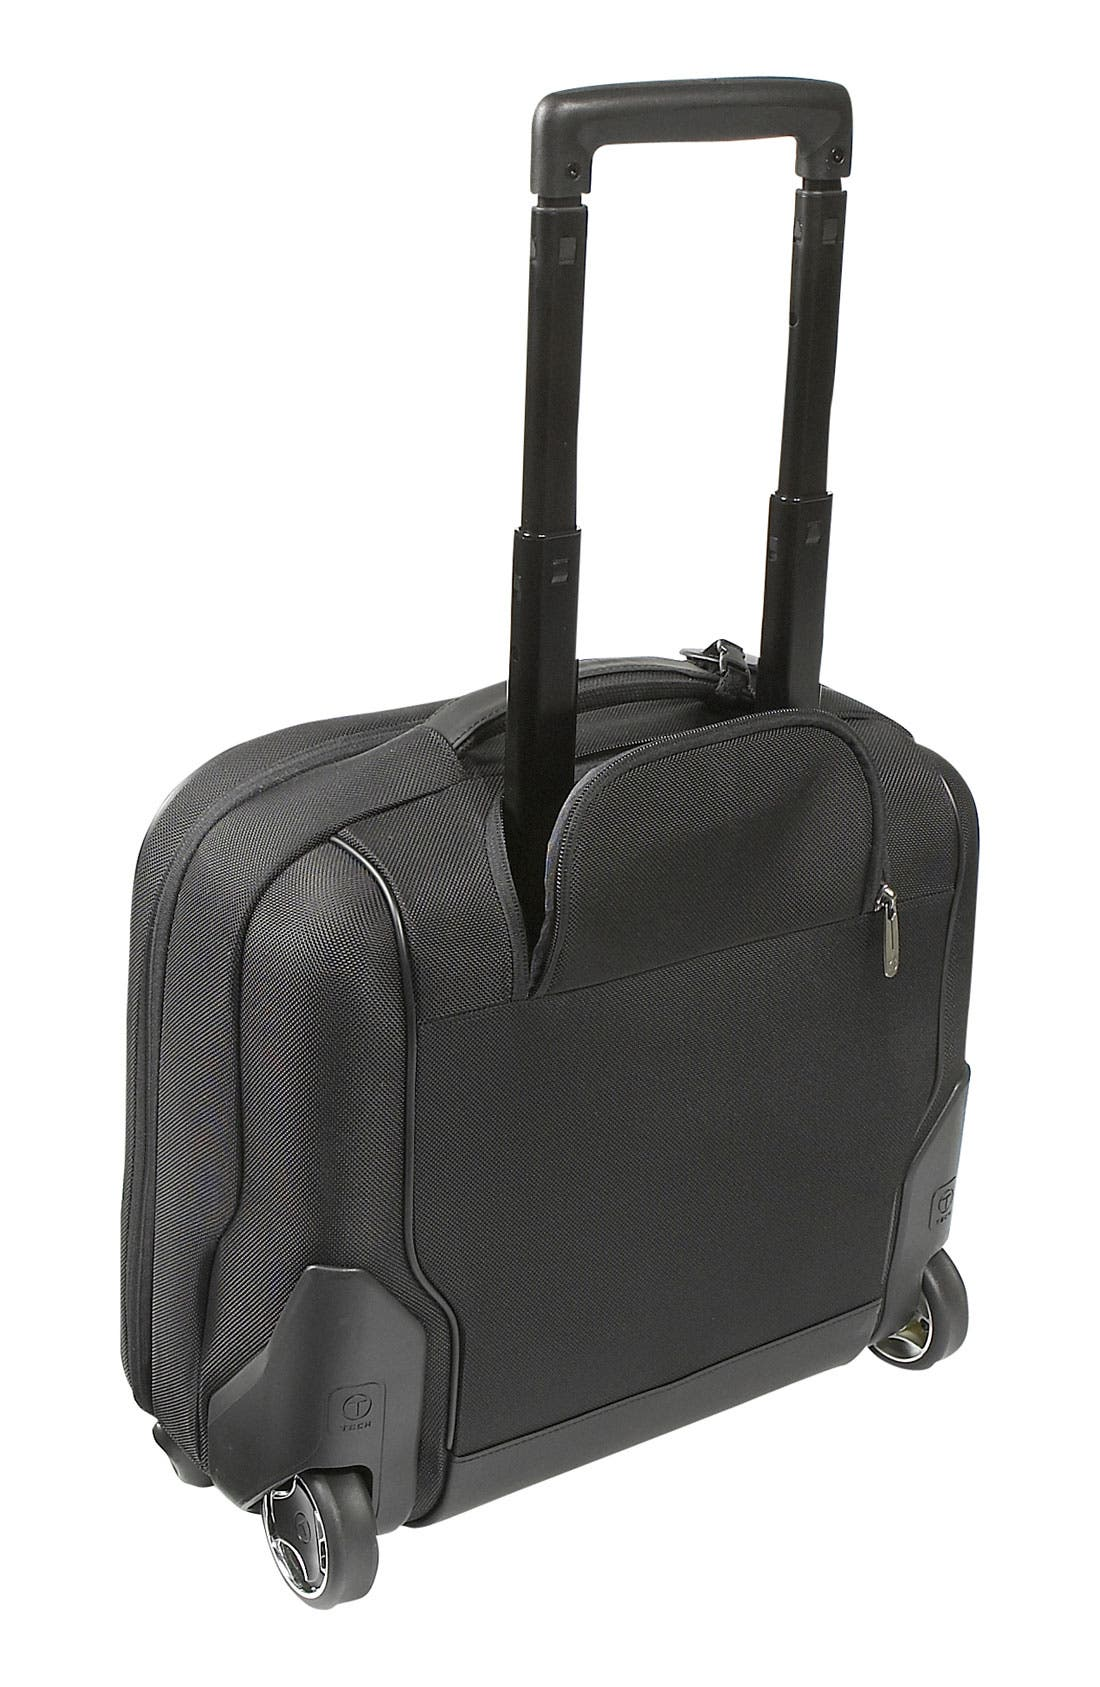 Alternate Image 2  - T-Tech by Tumi 'Presidio MacArthur' Wheeled Compact Laptop Briefcase